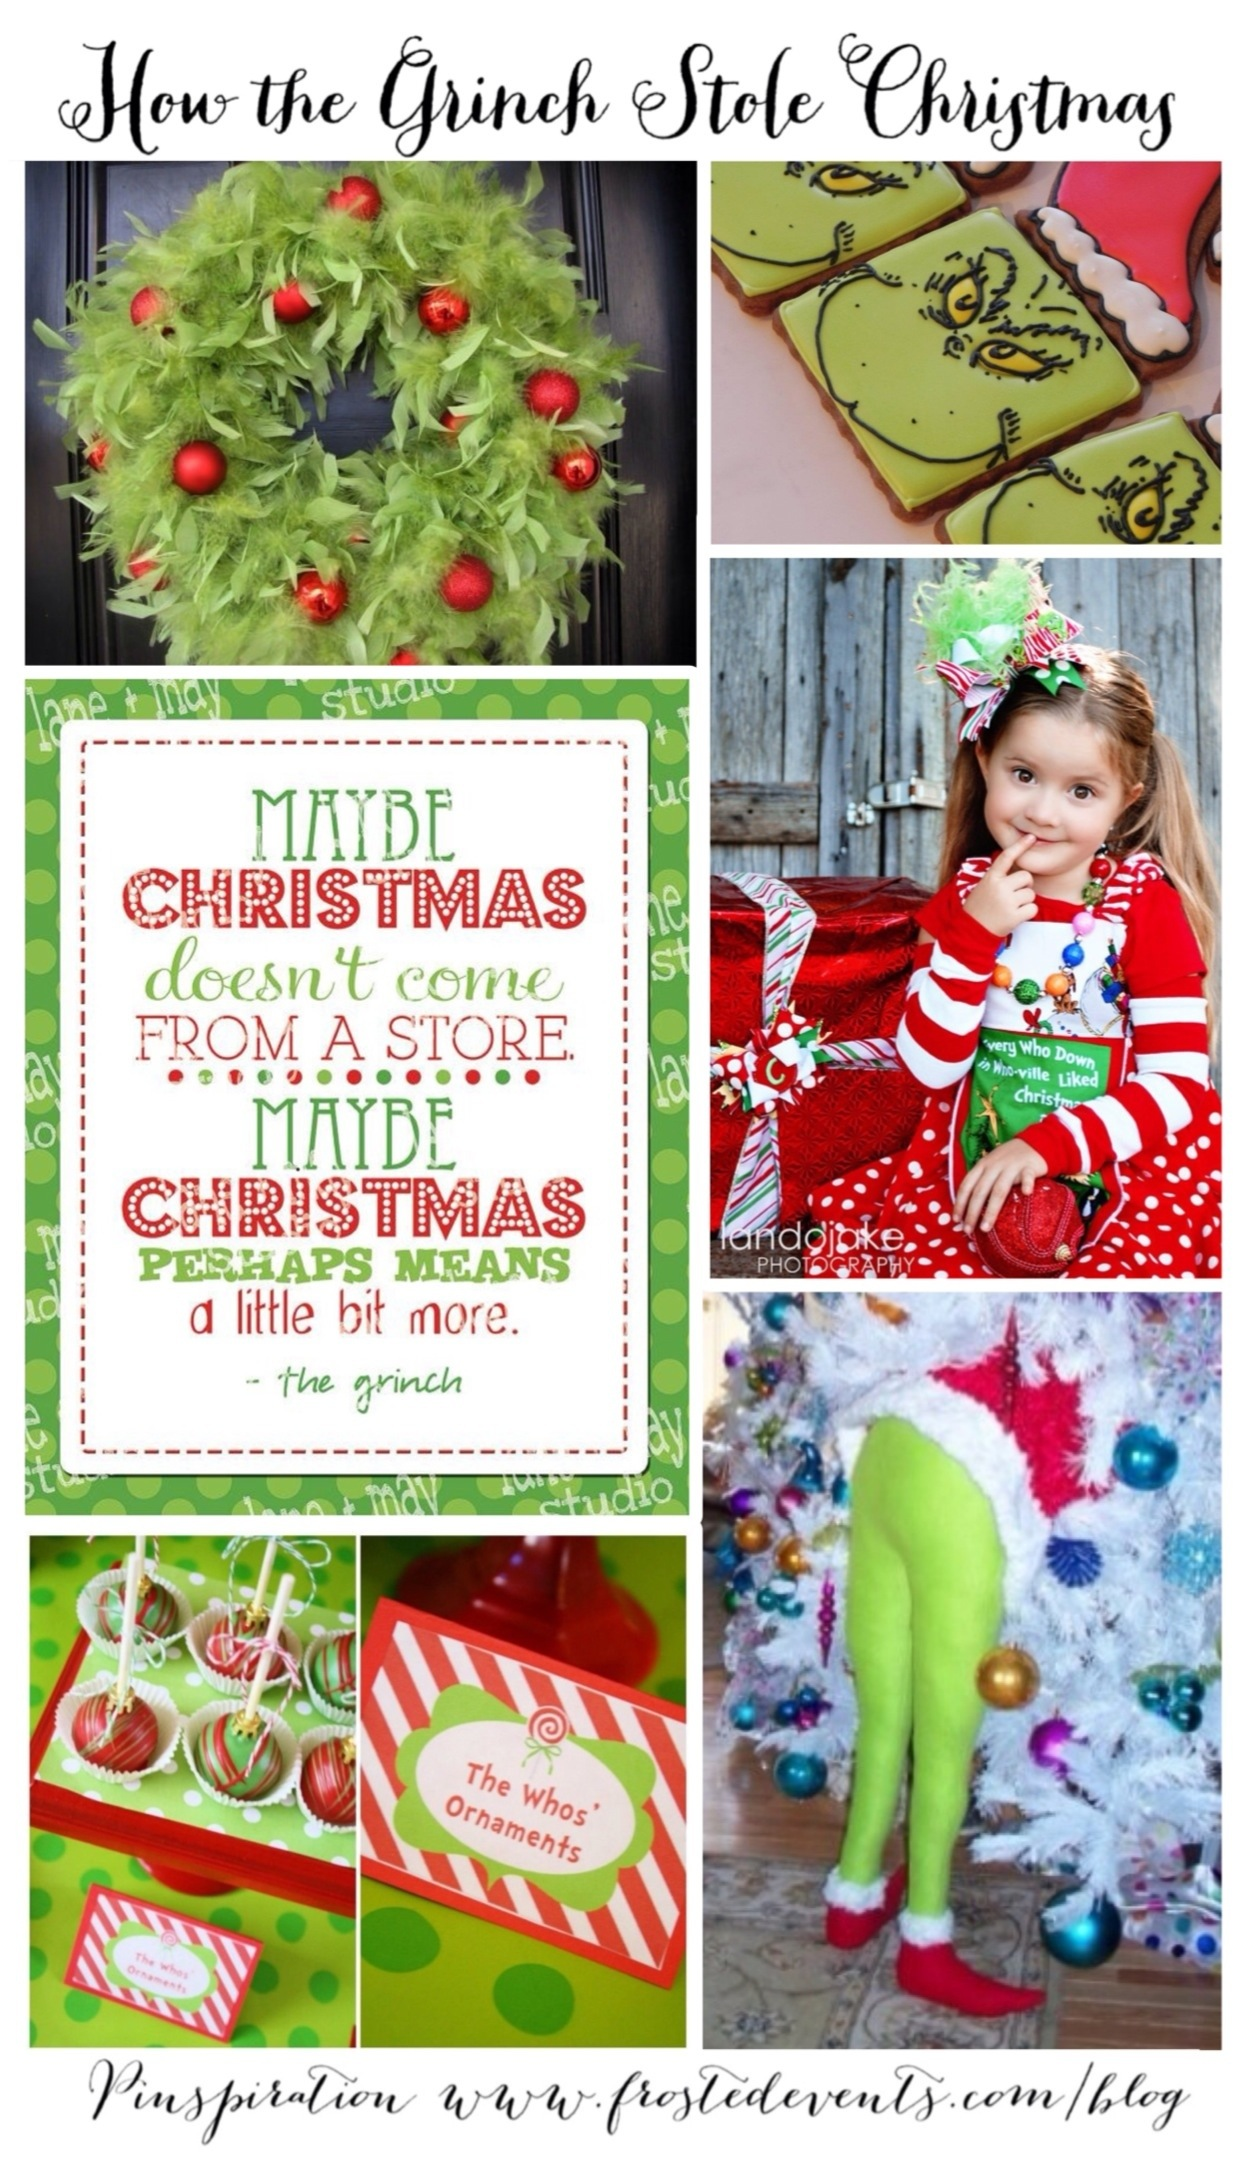 The Grinch- How the Grinch Stole Christmas - inspired by the Grinch movie 2018, Christmas party ideas via Misty Nelson frostedblog.com @frostedevents #theGrinch #theGrinchmovie